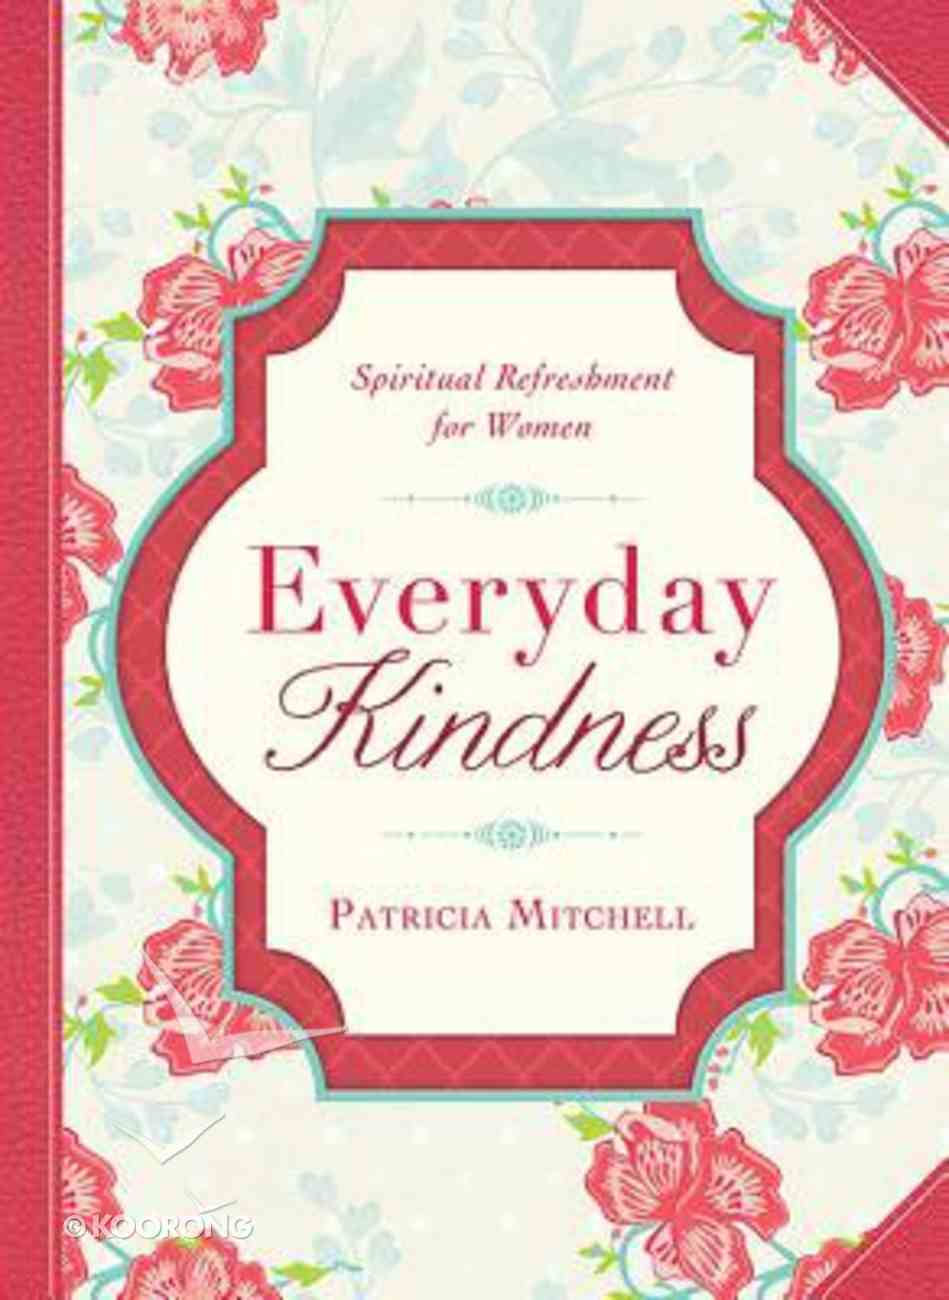 Everyday Kindness (Spiritual Refreshment For Women Series) Paperback